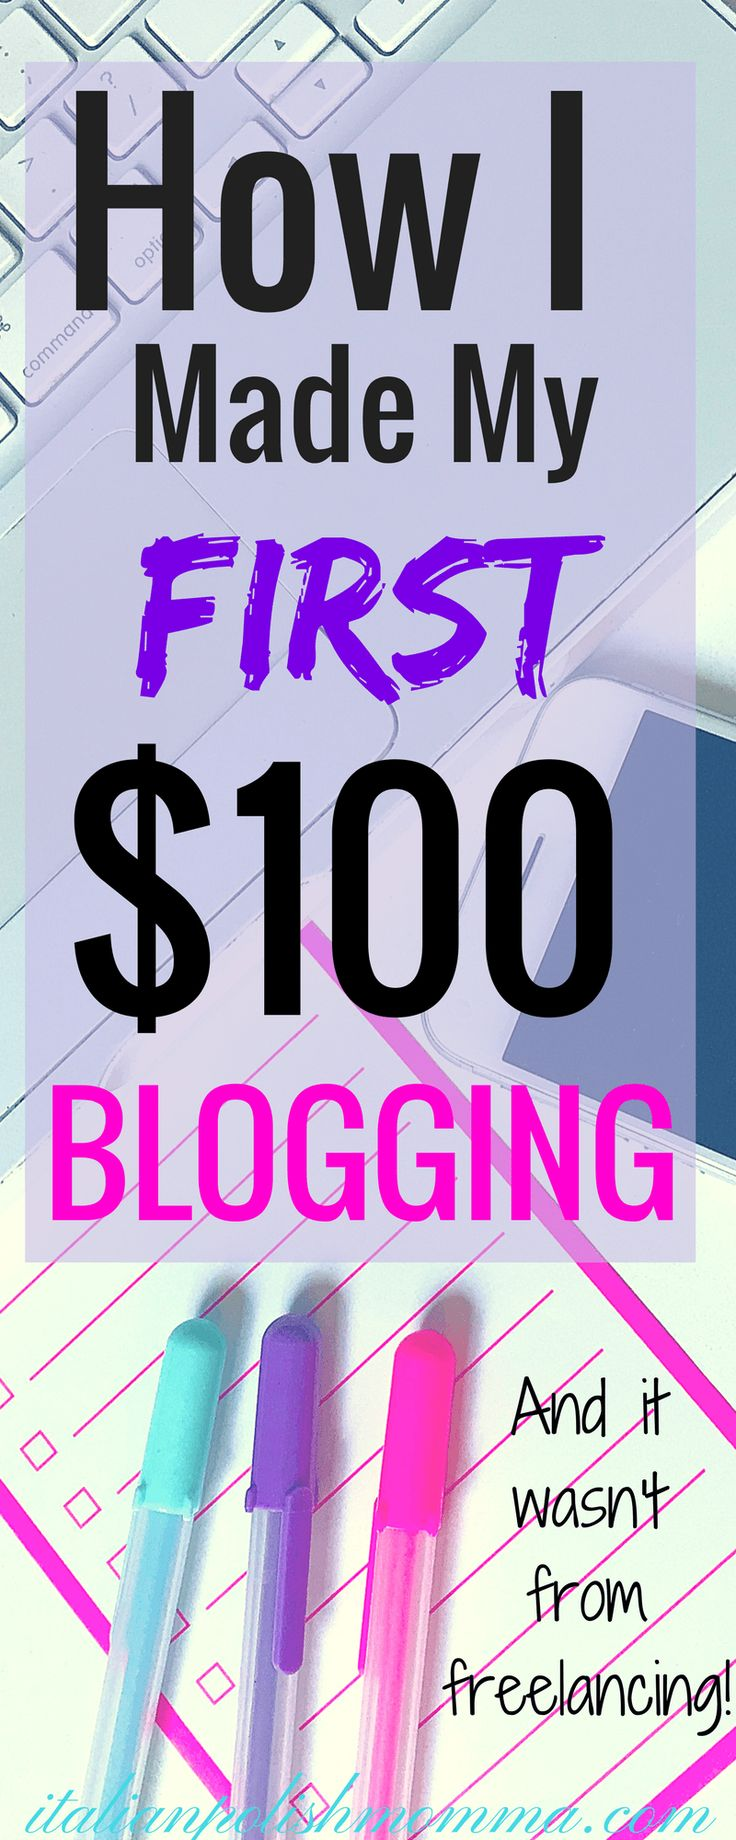 Here is how I made my first $100 blogging by my second month! These blogging tips will show you how easy it is to make money blogging for beginners! It is possible to make money working from home blogging! And this wasn't from freelancing!